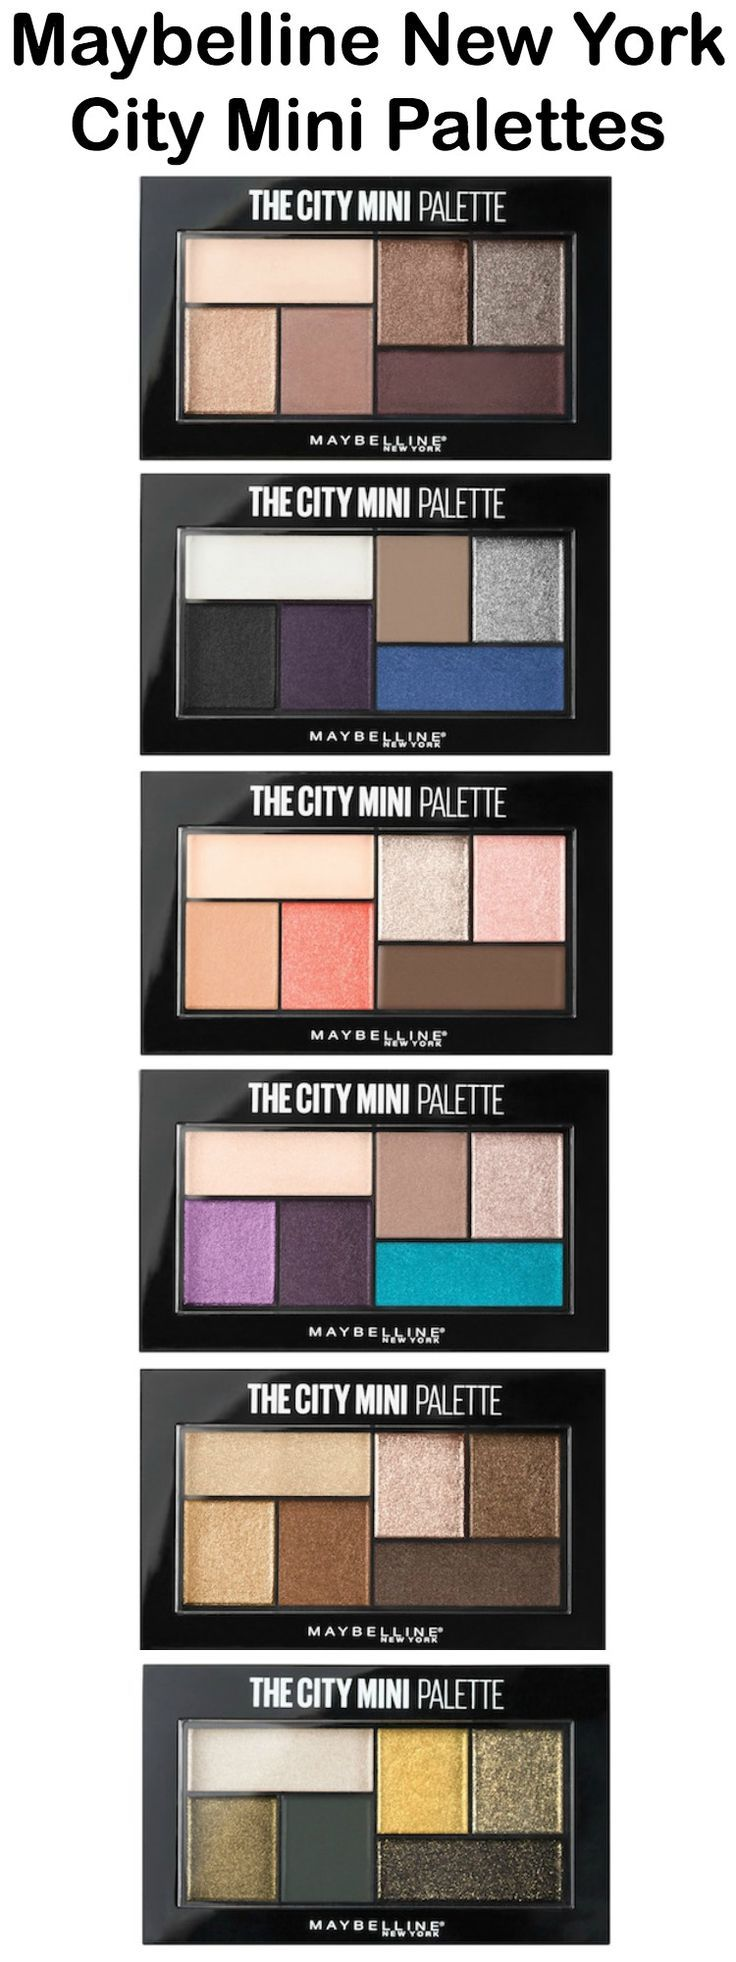 Maybelline New York City Mini Palettes...under $10 & great quality!